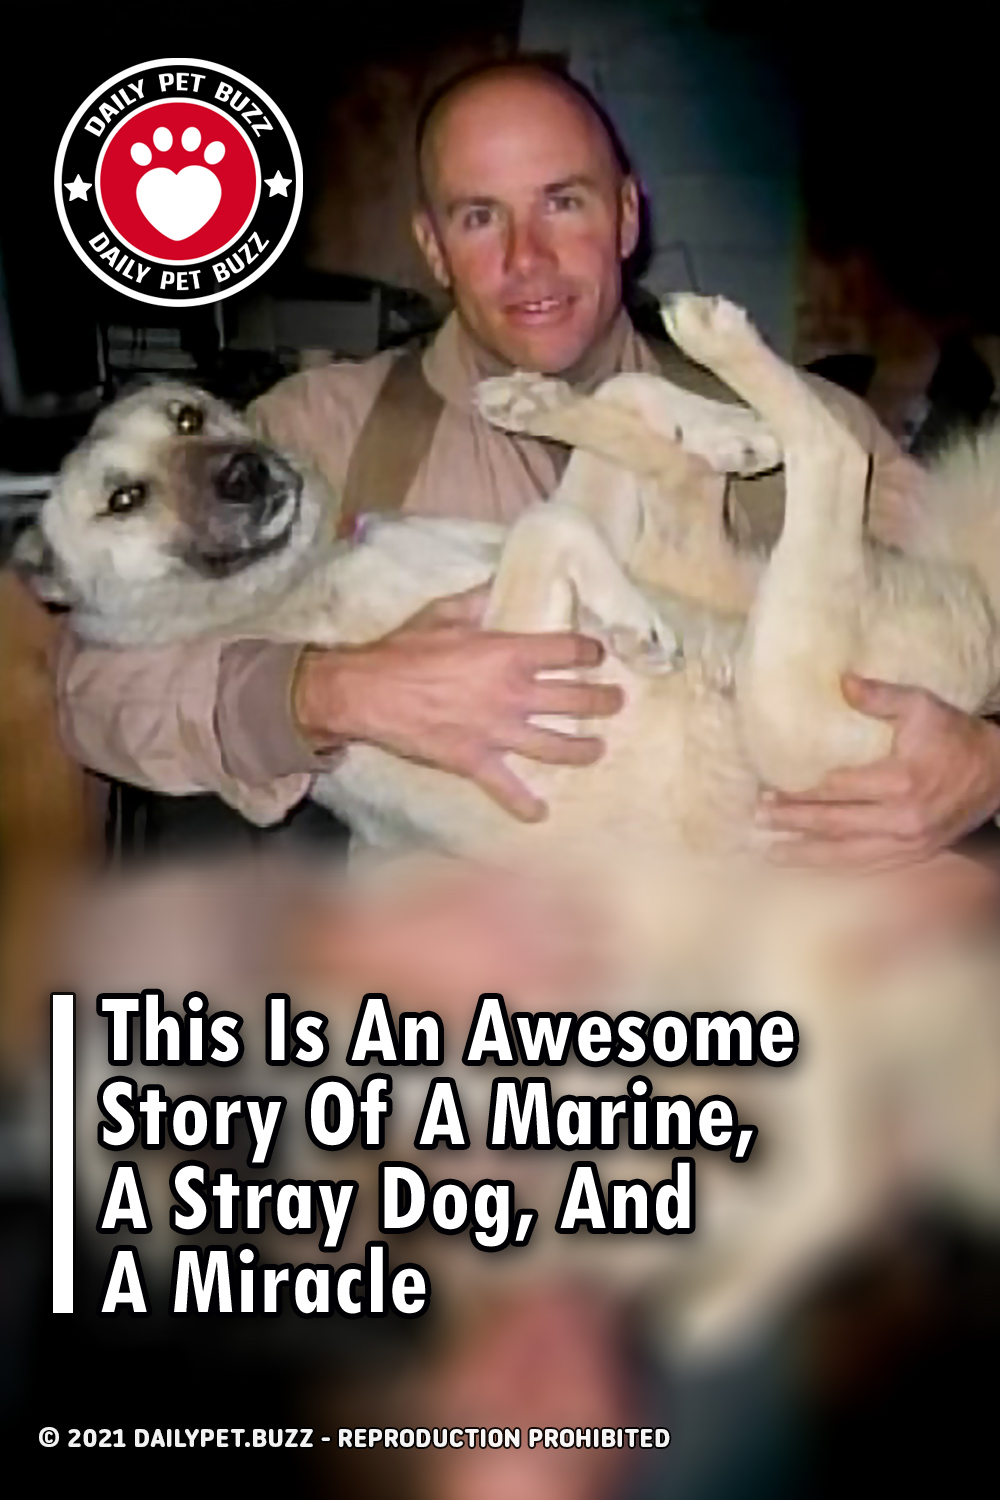 This Is An Awesome Story Of A Marine, A Stray Dog, And A Miracle